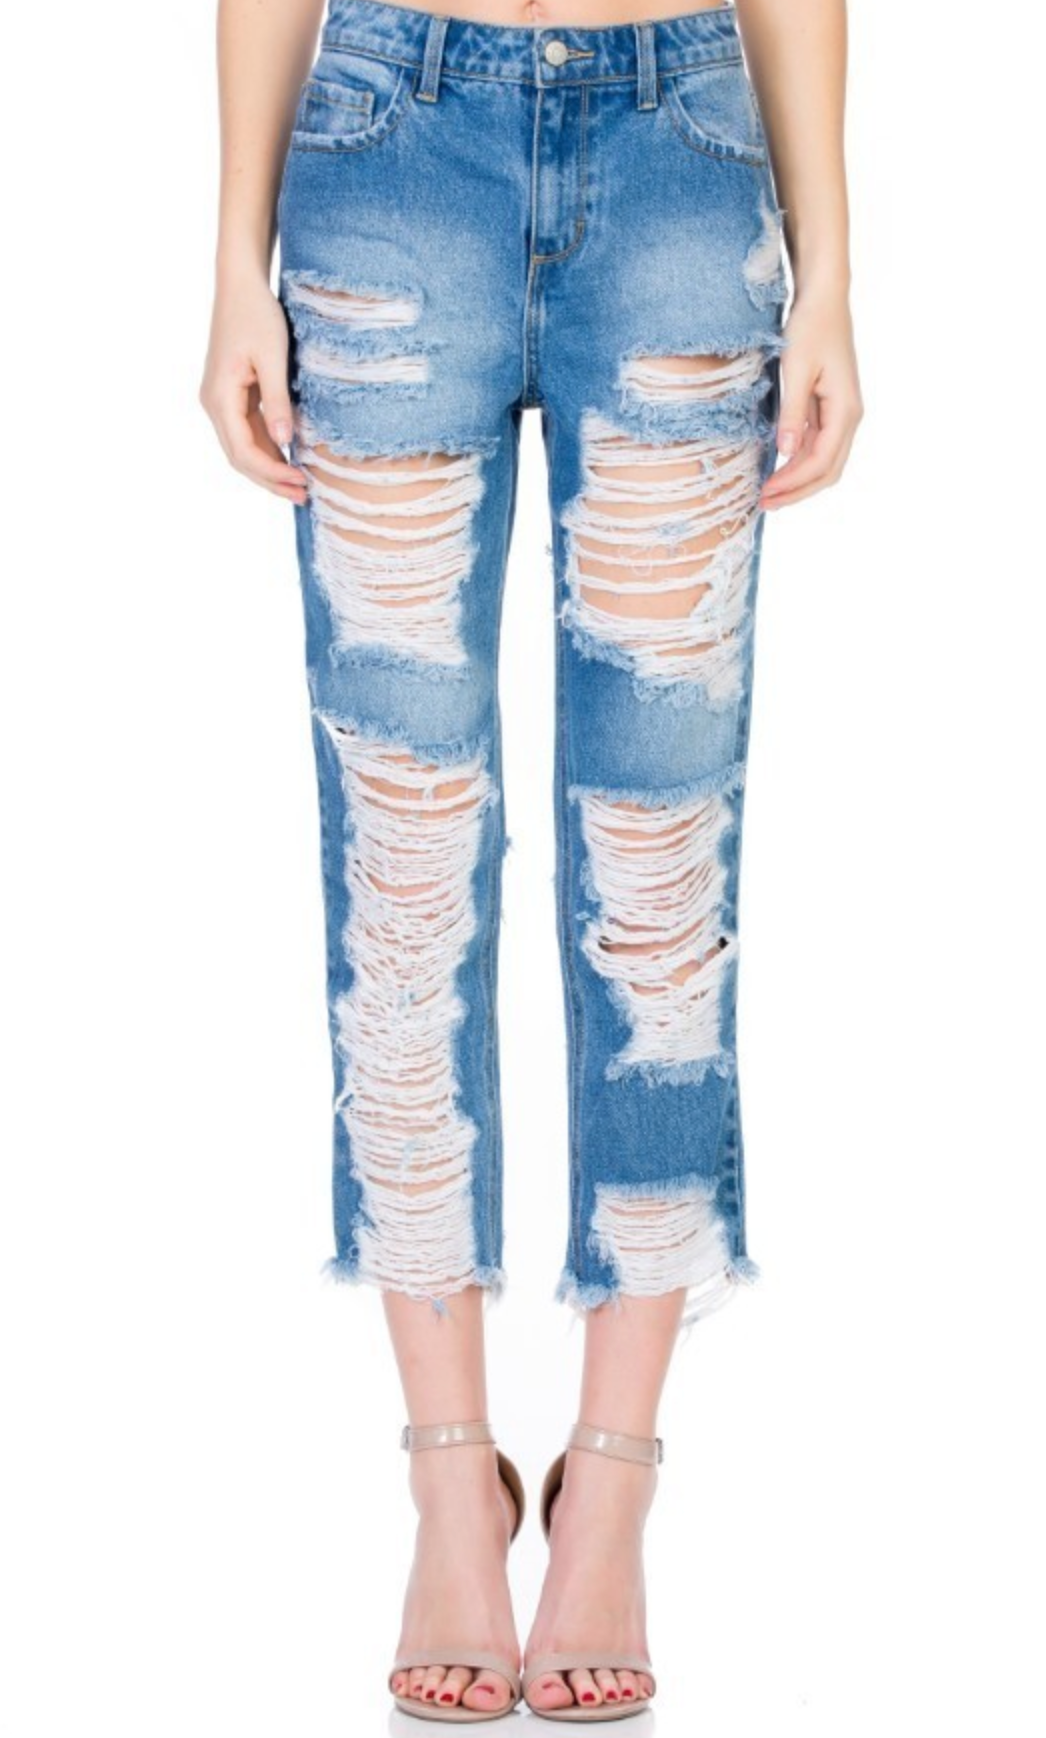 No Sensor Extreme Distressed Jeans